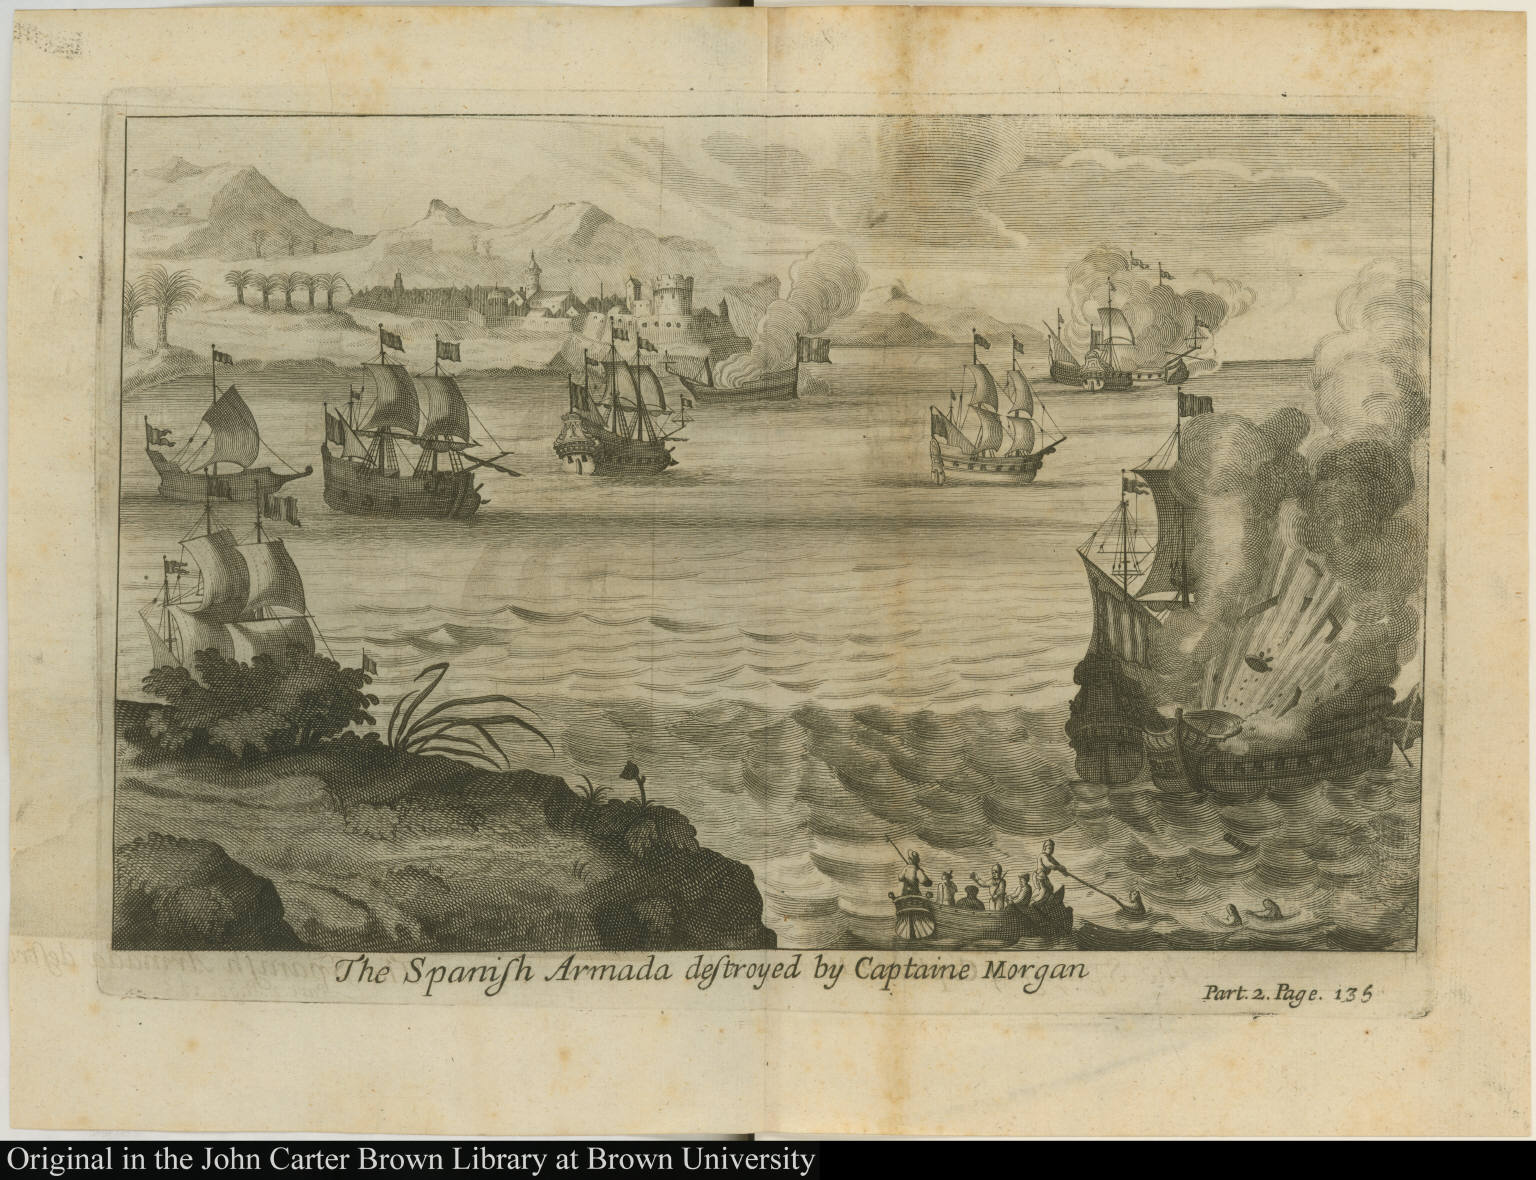 The Spanish Armada destroyed by Captaine Morgan